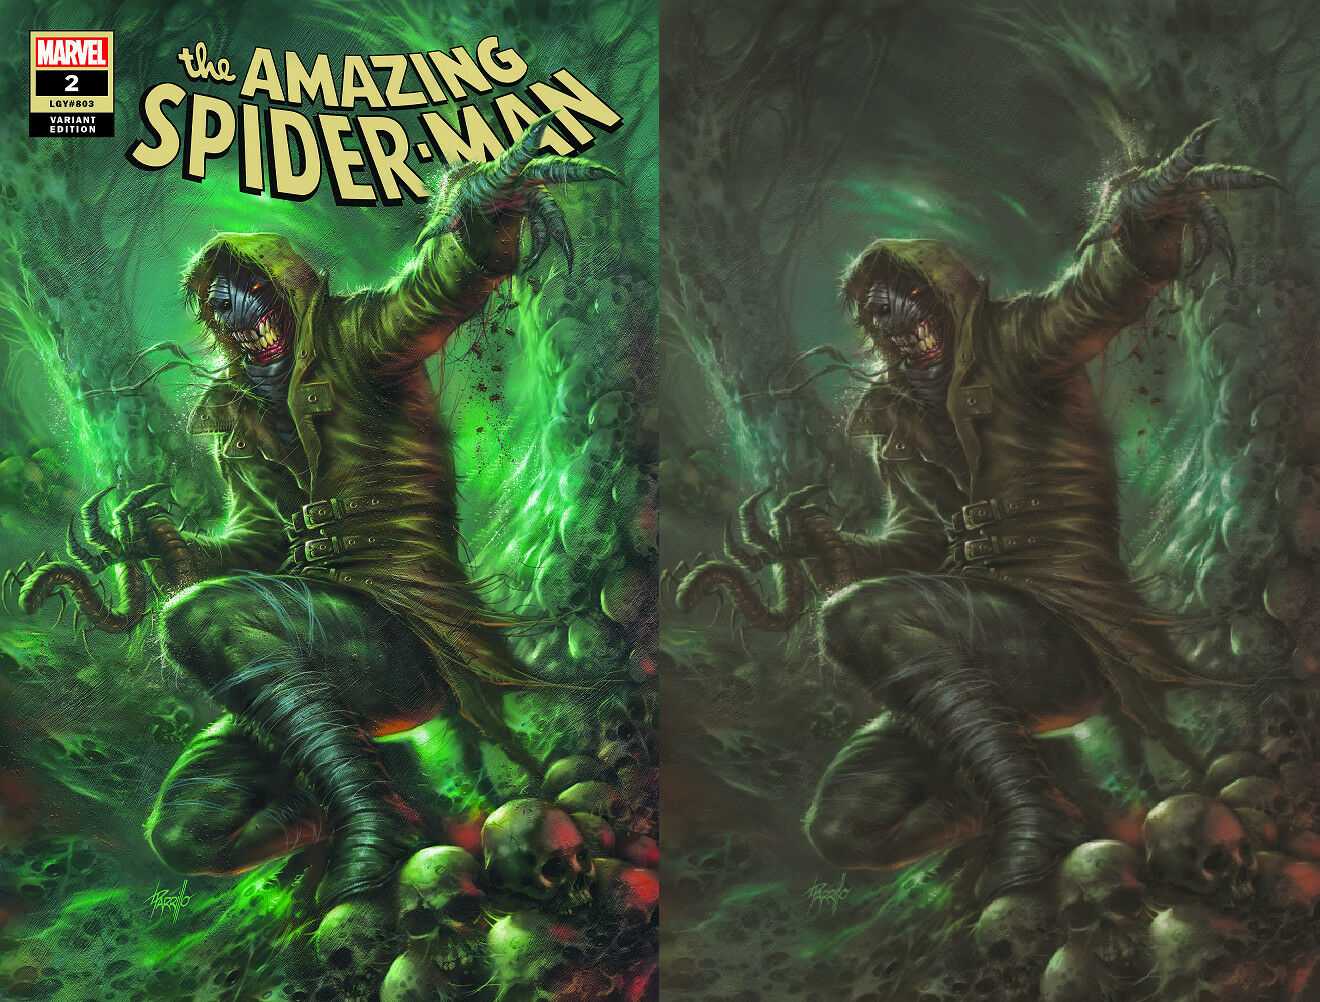 AMAZING SPIDER-MAN #2 LUCIO PARRILLO 1st KINDRED COVER APPEARANCE EXCLUSIVE VARIANTS